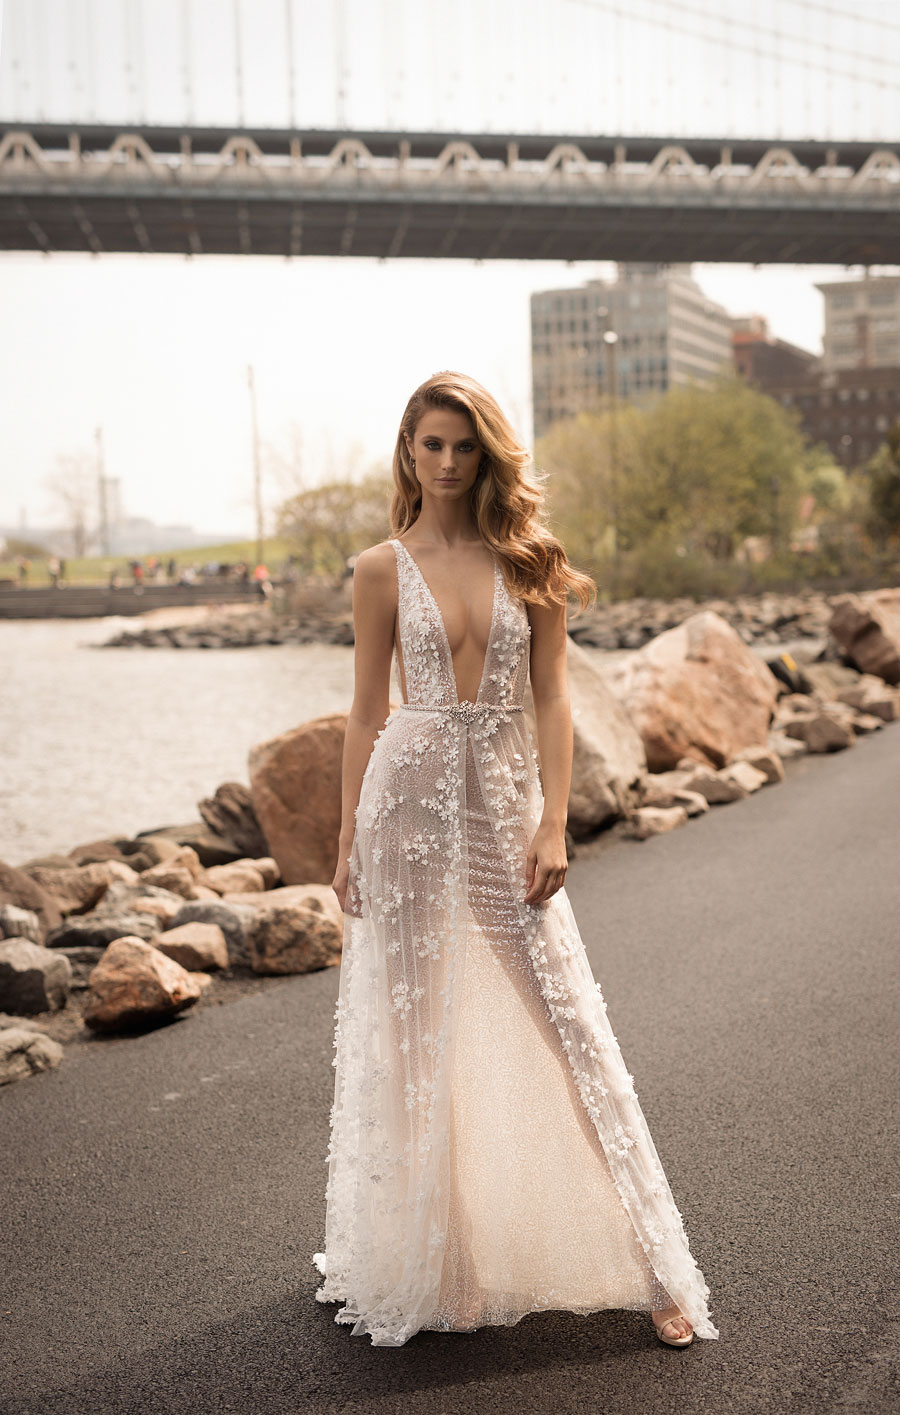 Berta Bridal 2018: The Most In-demand Wedding Dresses In The World!